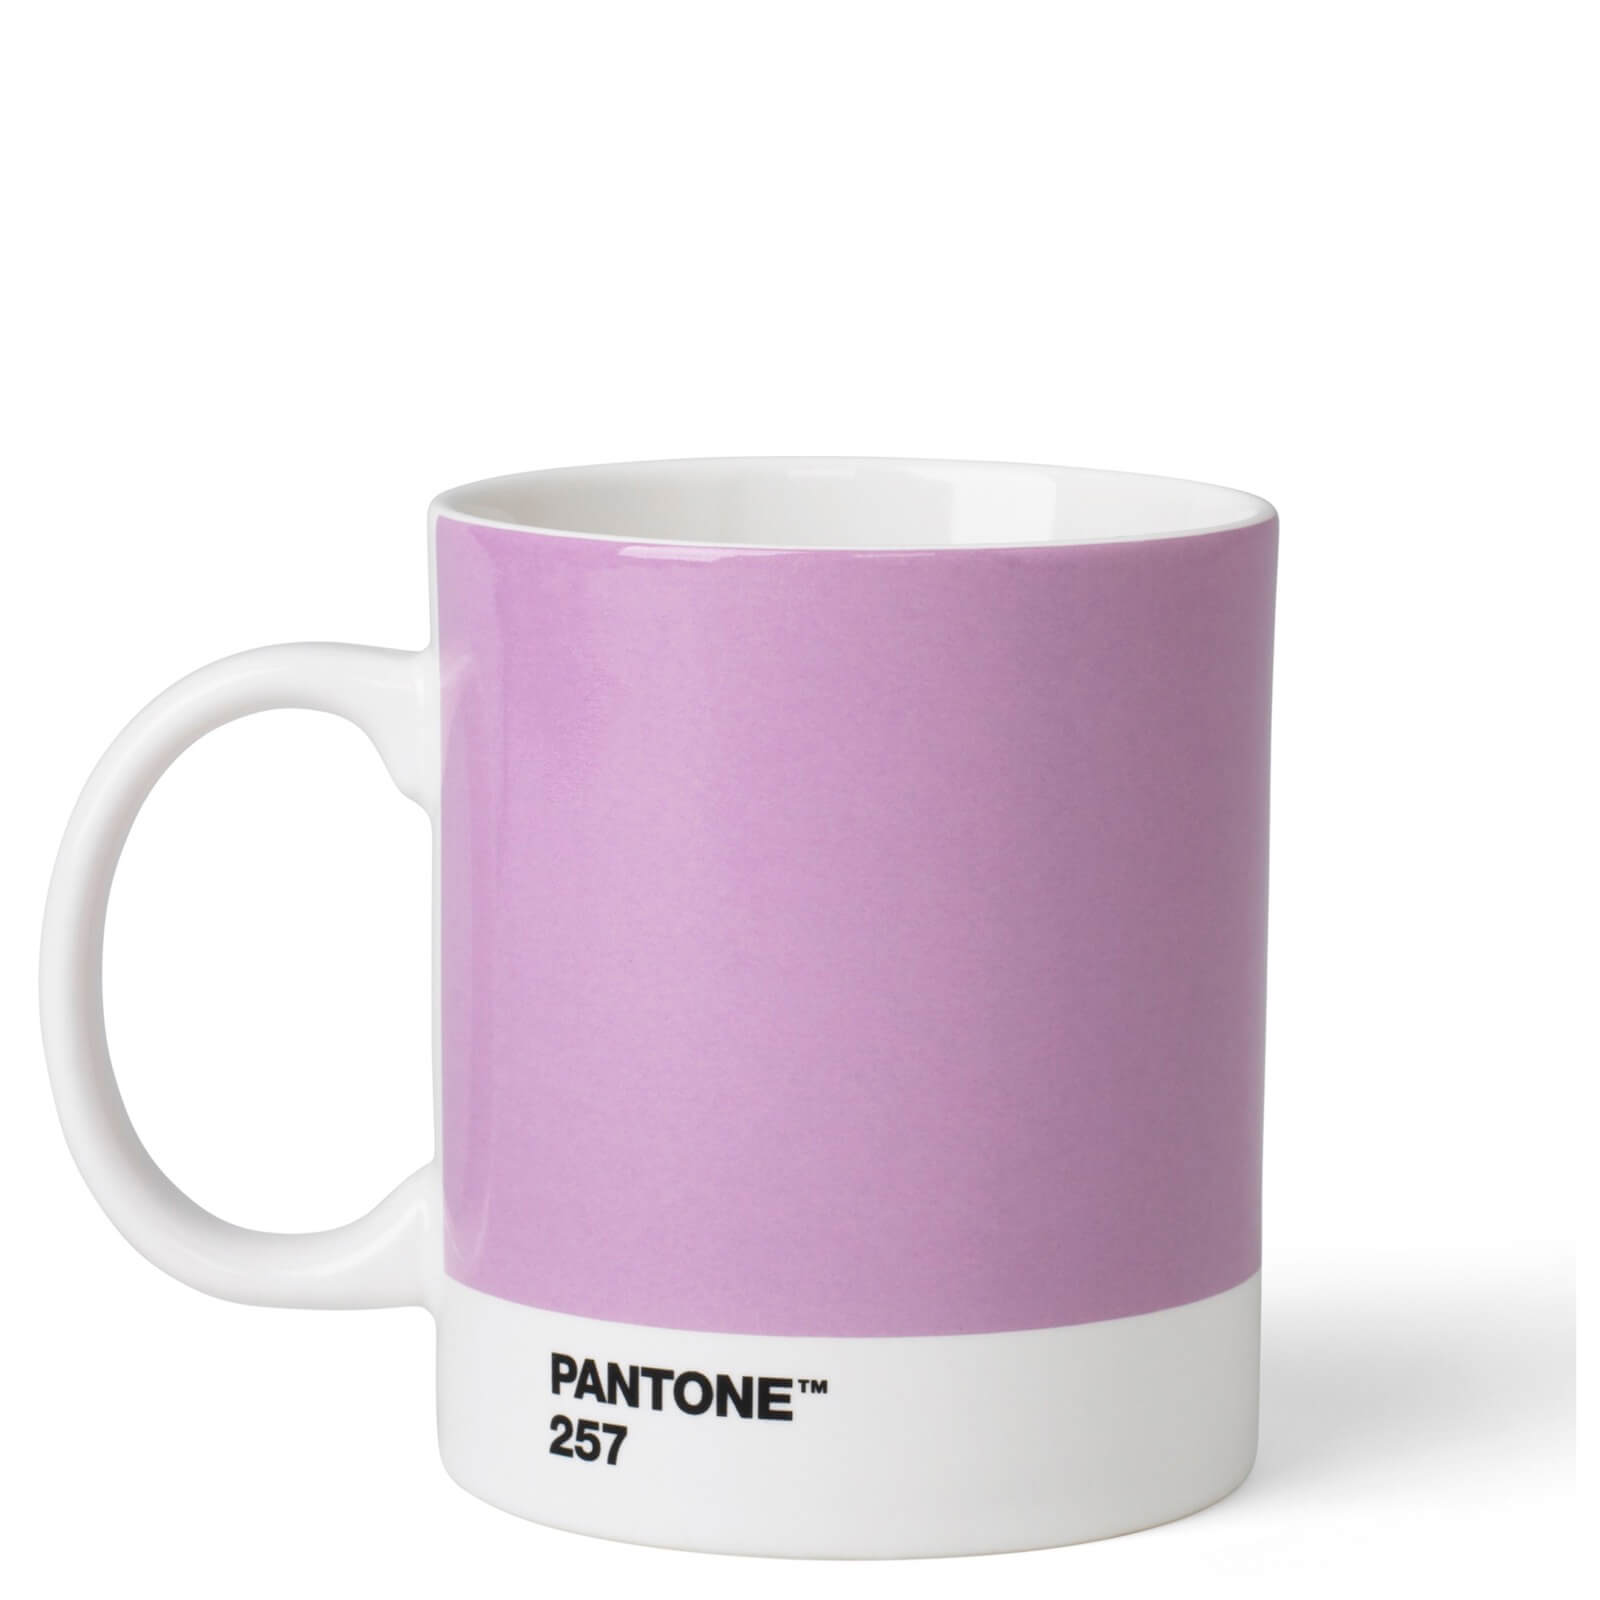 Pantone Mug - Light Purple 257